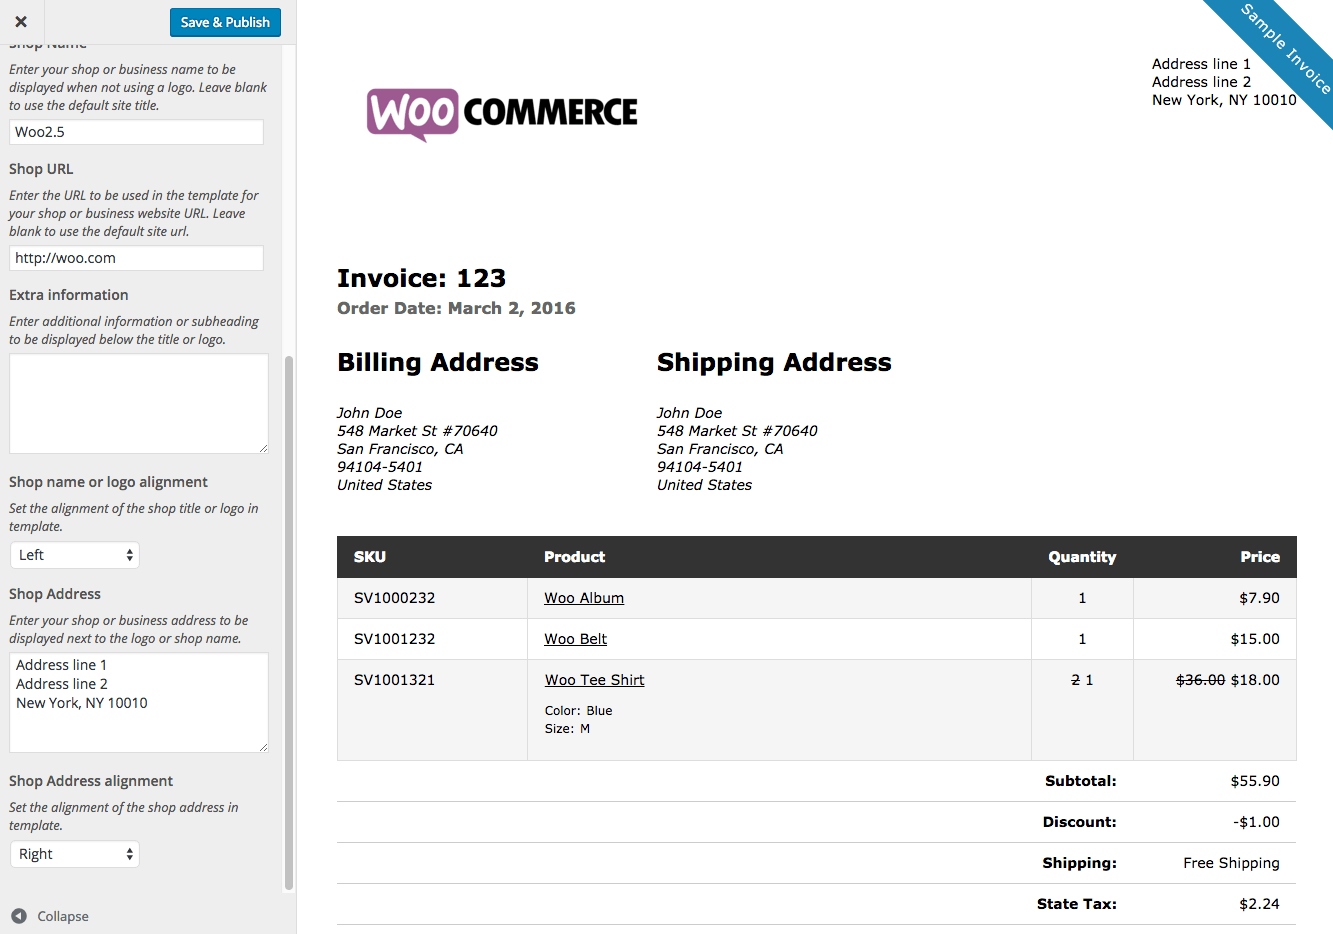 Coolmathgamesus  Sweet Print Invoices Amp Packing Lists  Woocommerce With Handsome Woocommerce Print Invoices  Packing Lists Customizer With Cute Access Invoice Template Also Late Invoice In Addition Manufacturer Invoice And Invoice Mac As Well As Bmw I Invoice Price Additionally Examples Of Invoices For Services Rendered From Woocommercecom With Coolmathgamesus  Handsome Print Invoices Amp Packing Lists  Woocommerce With Cute Woocommerce Print Invoices  Packing Lists Customizer And Sweet Access Invoice Template Also Late Invoice In Addition Manufacturer Invoice From Woocommercecom